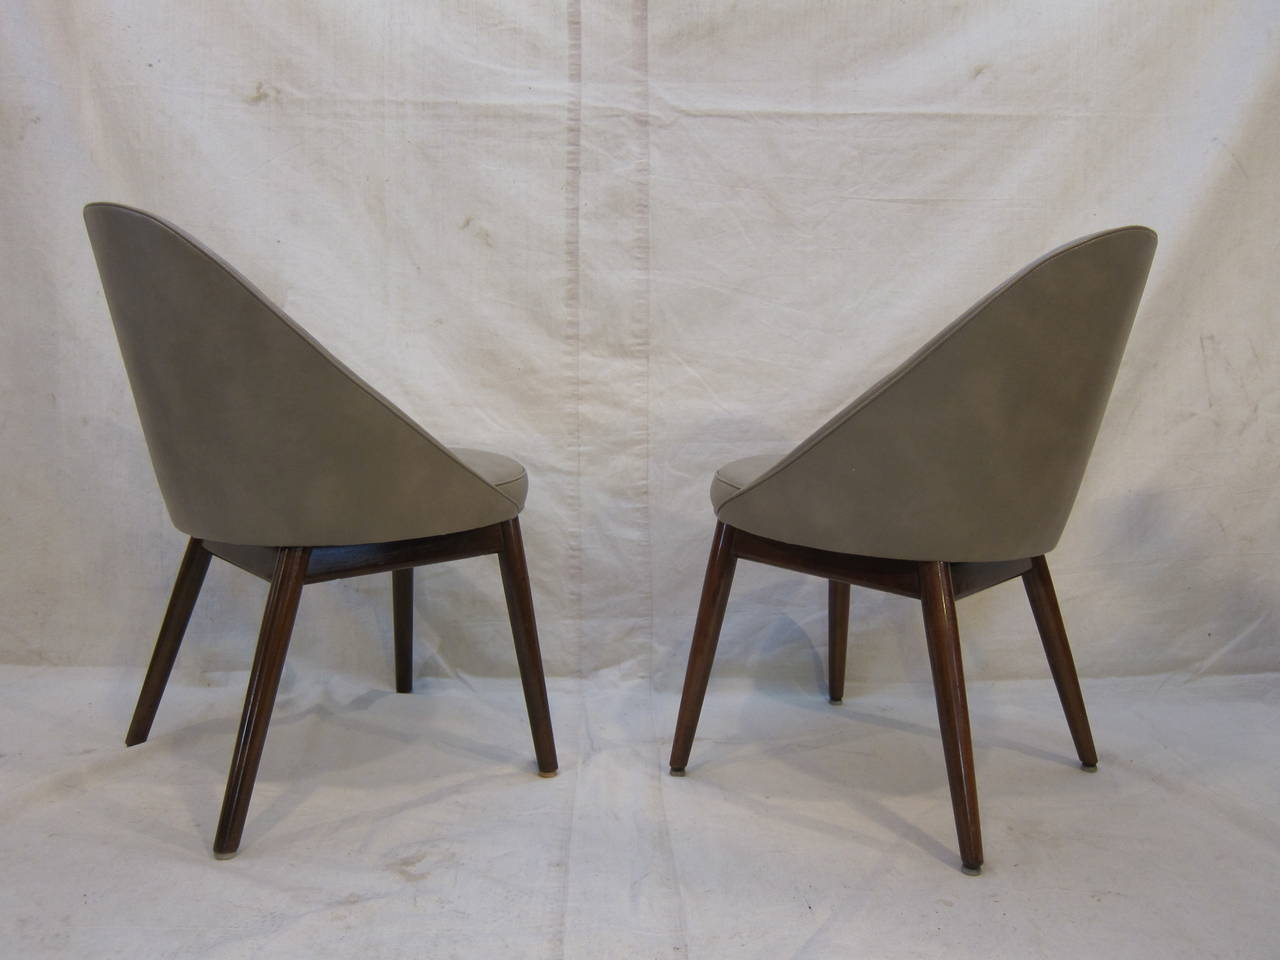 Mid-Century Modern Pair of Danish Chairs Attributed to Ejvind Johansson For Sale